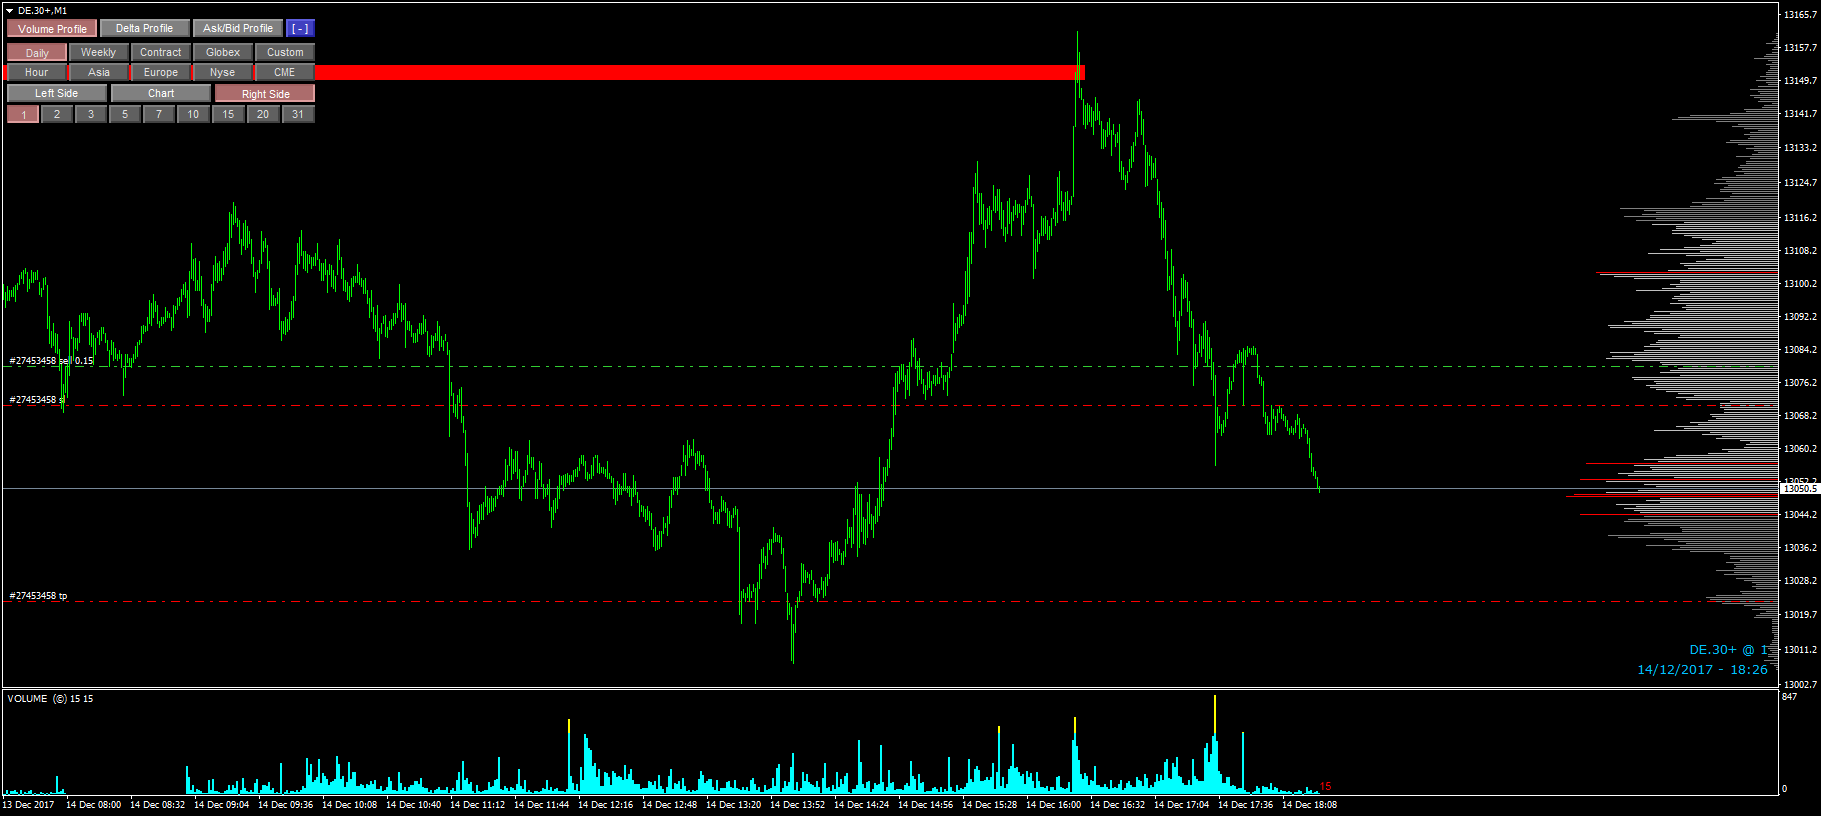 dax30-trading-room-1